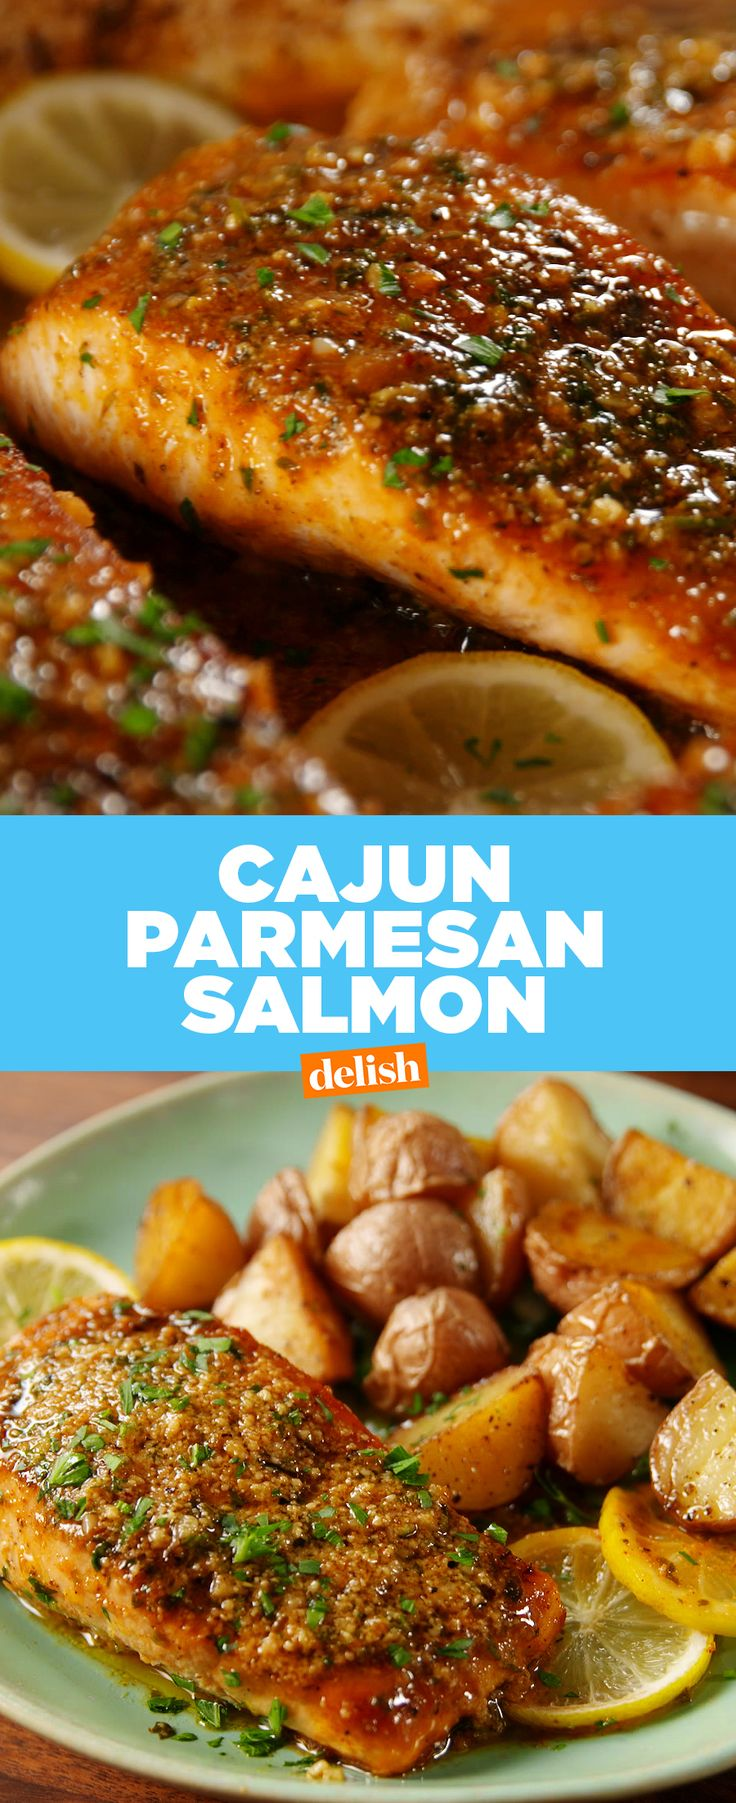 Cajun Parmesan Salmon is full of all your favorite flavors. Get the recipe from Delish.com.